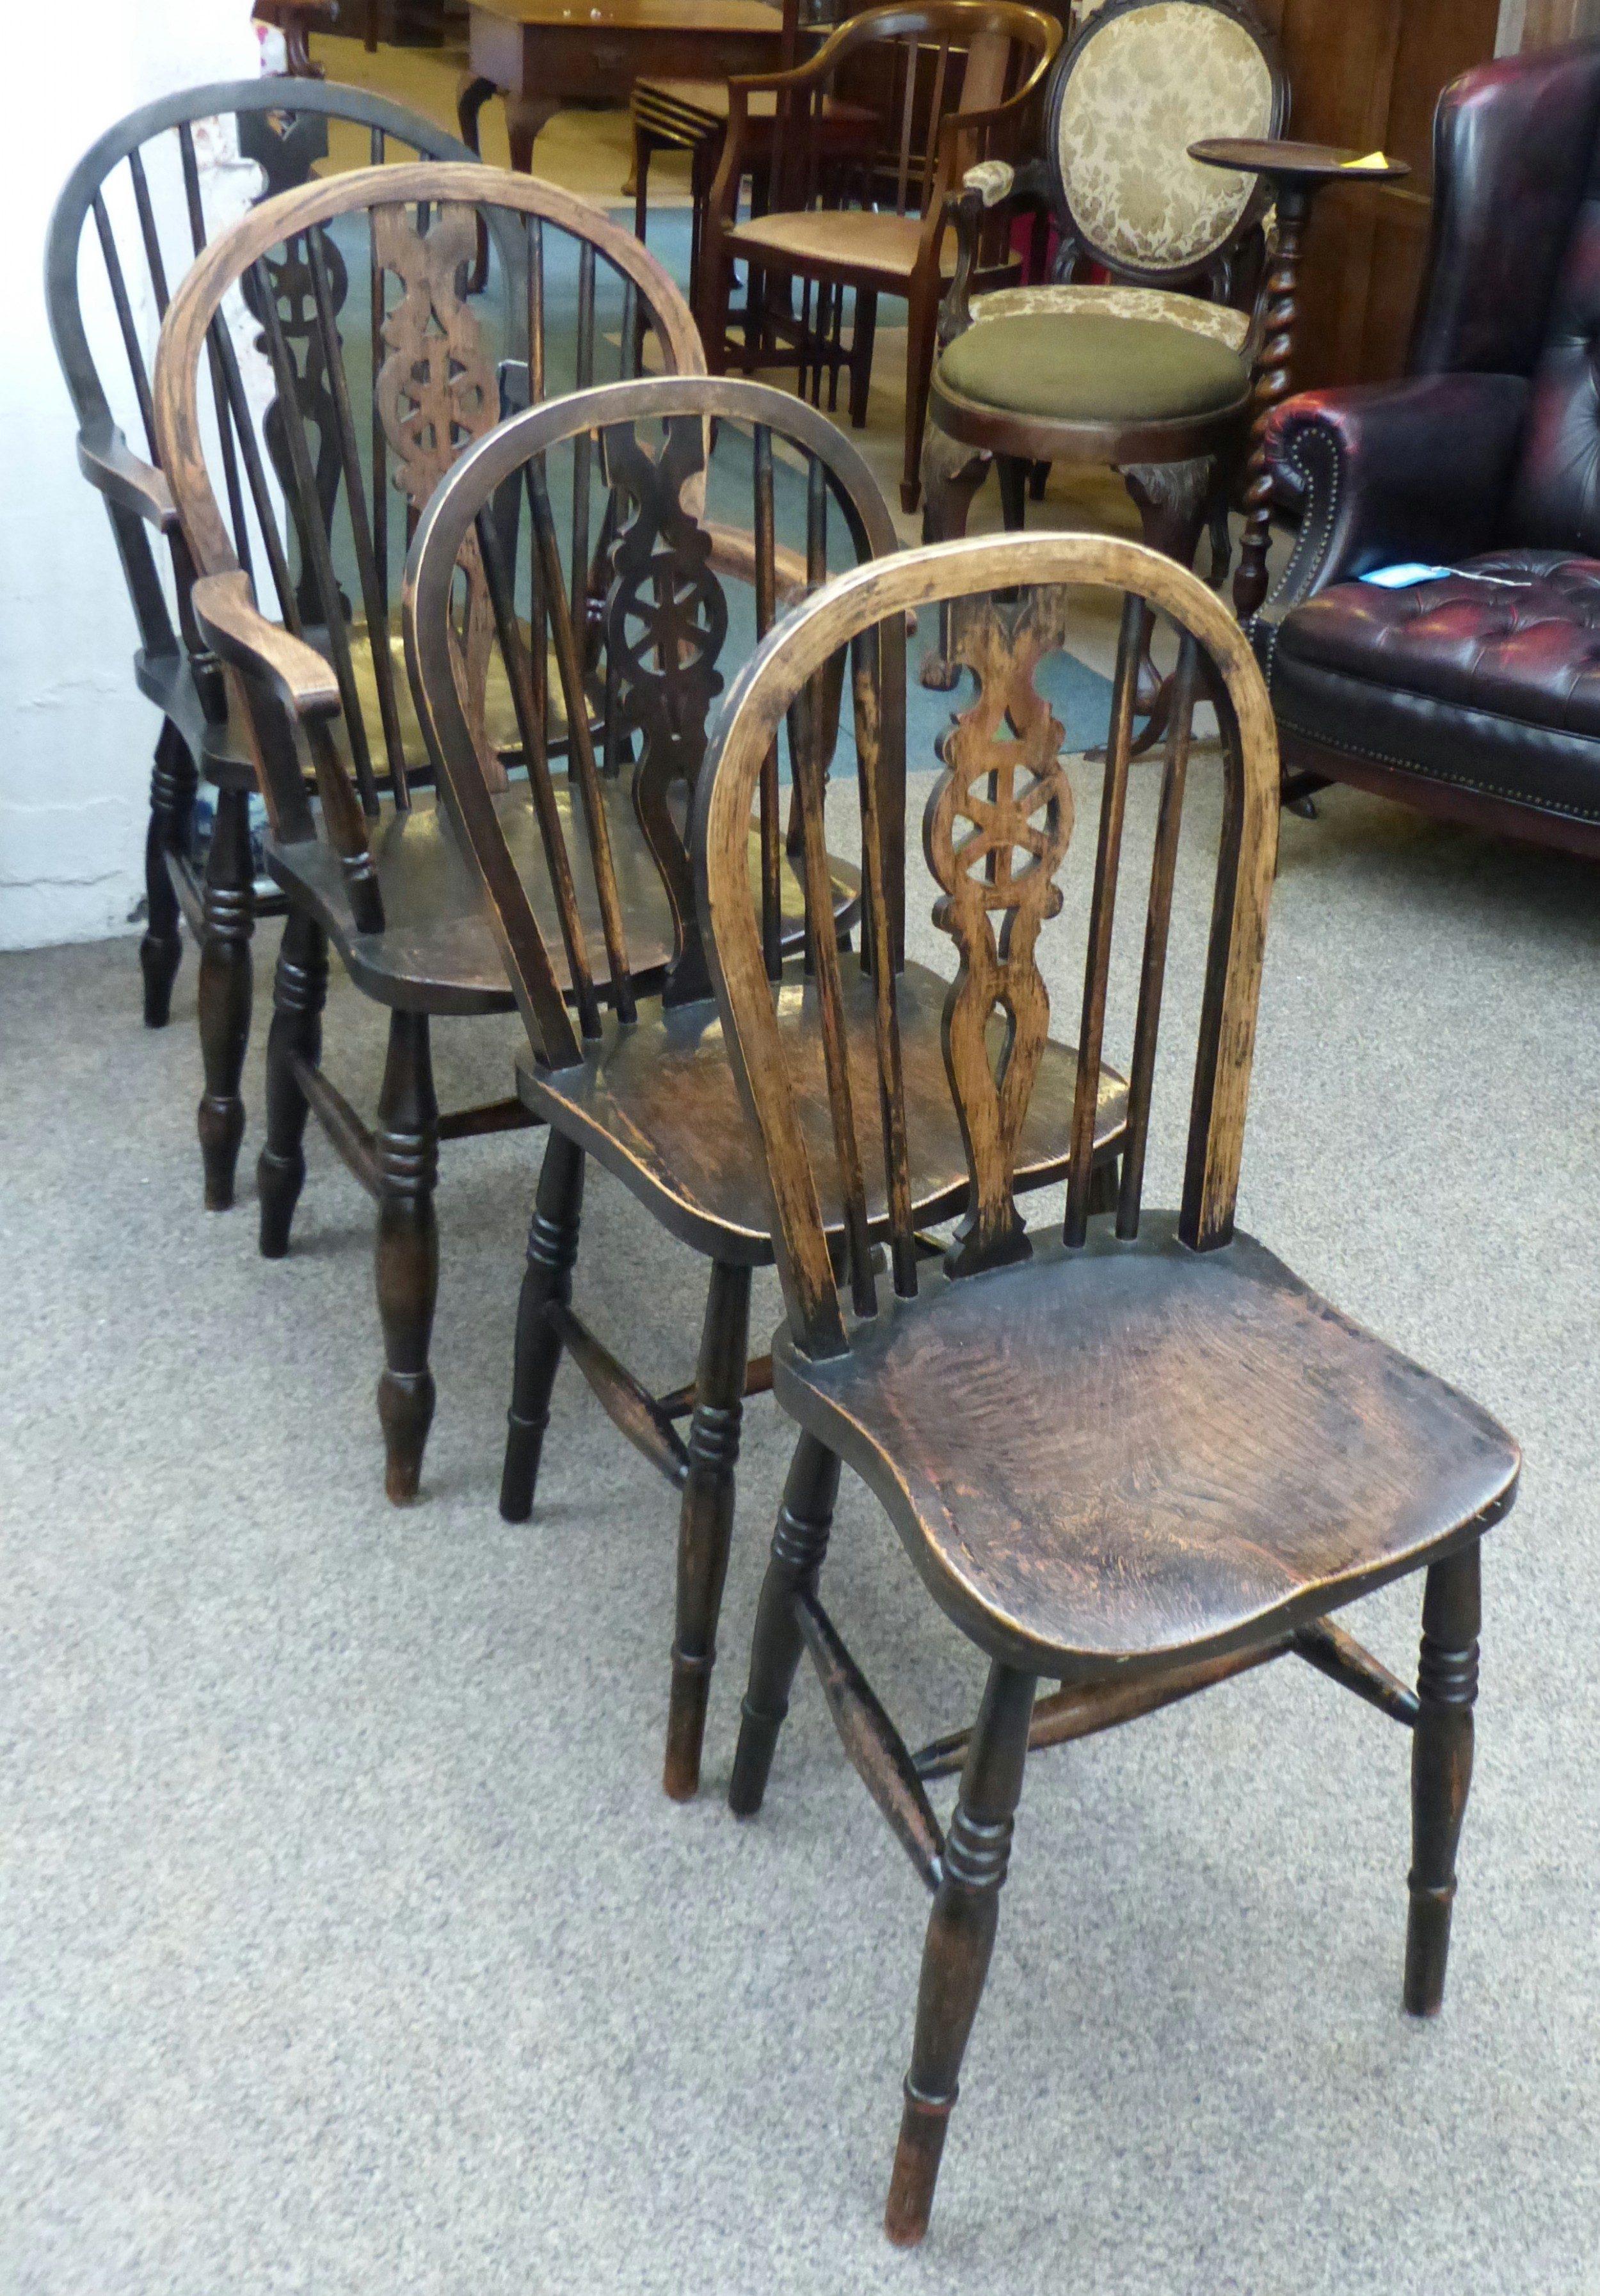 4 country chairs